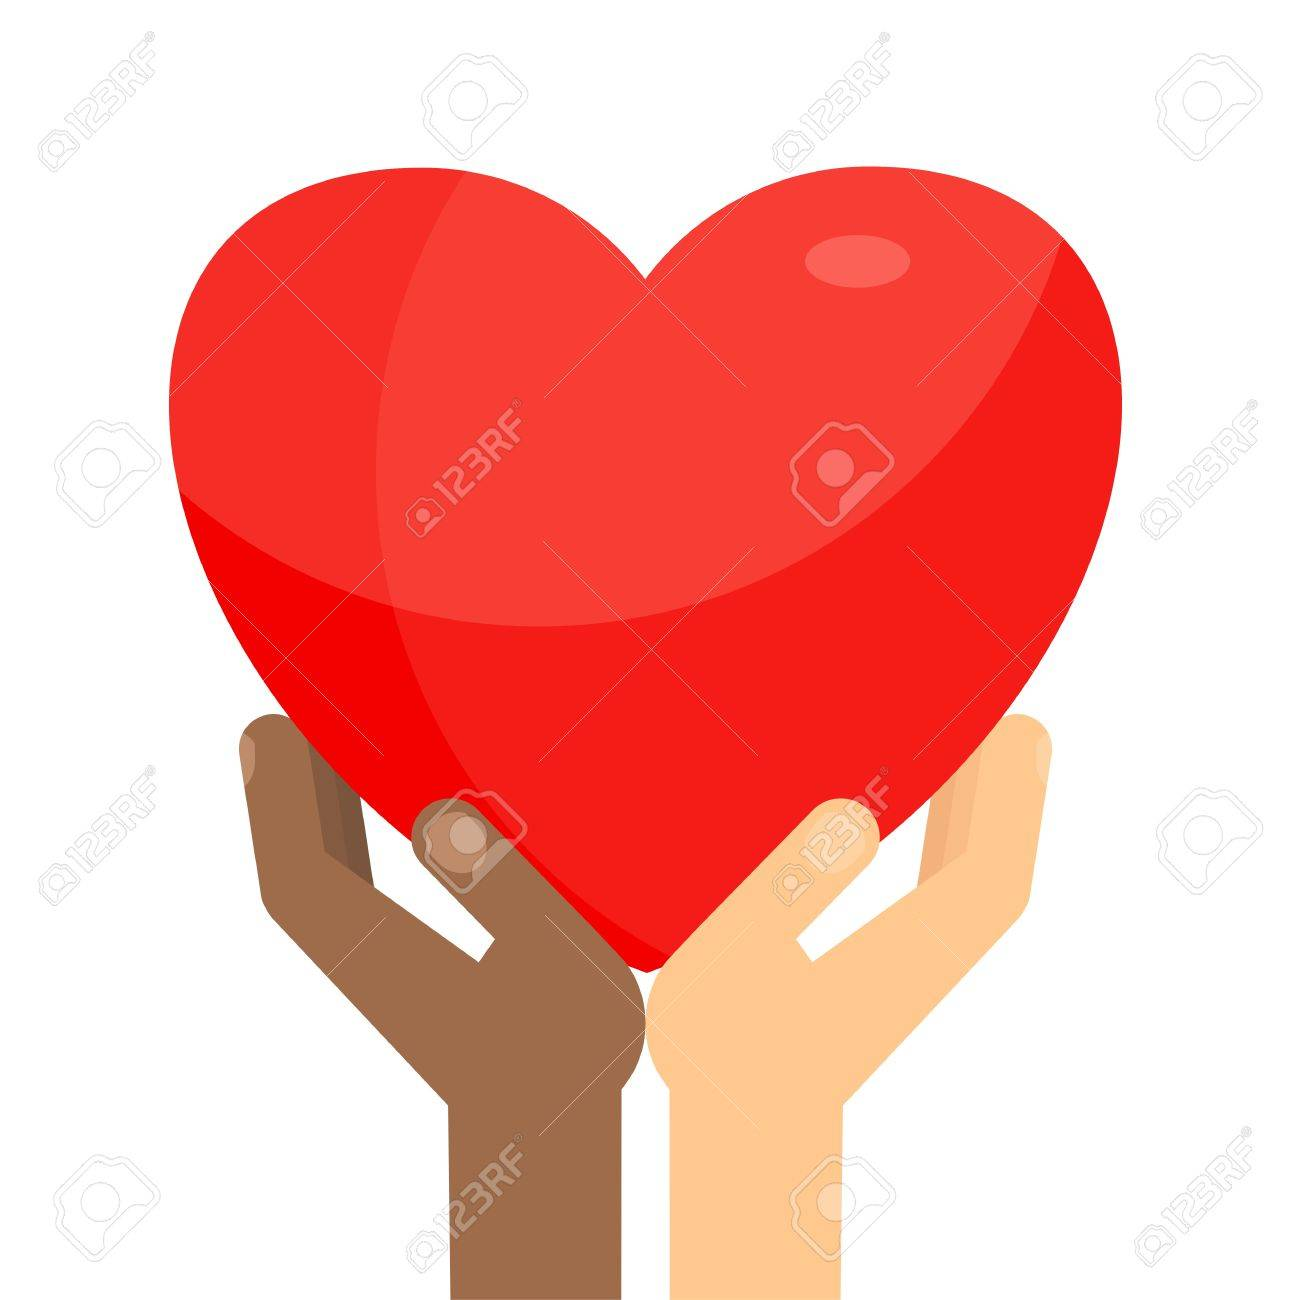 Afro american and white hands holding big red heart symbol of afro american and white hands holding big red heart symbol of love and kindness buycottarizona Gallery